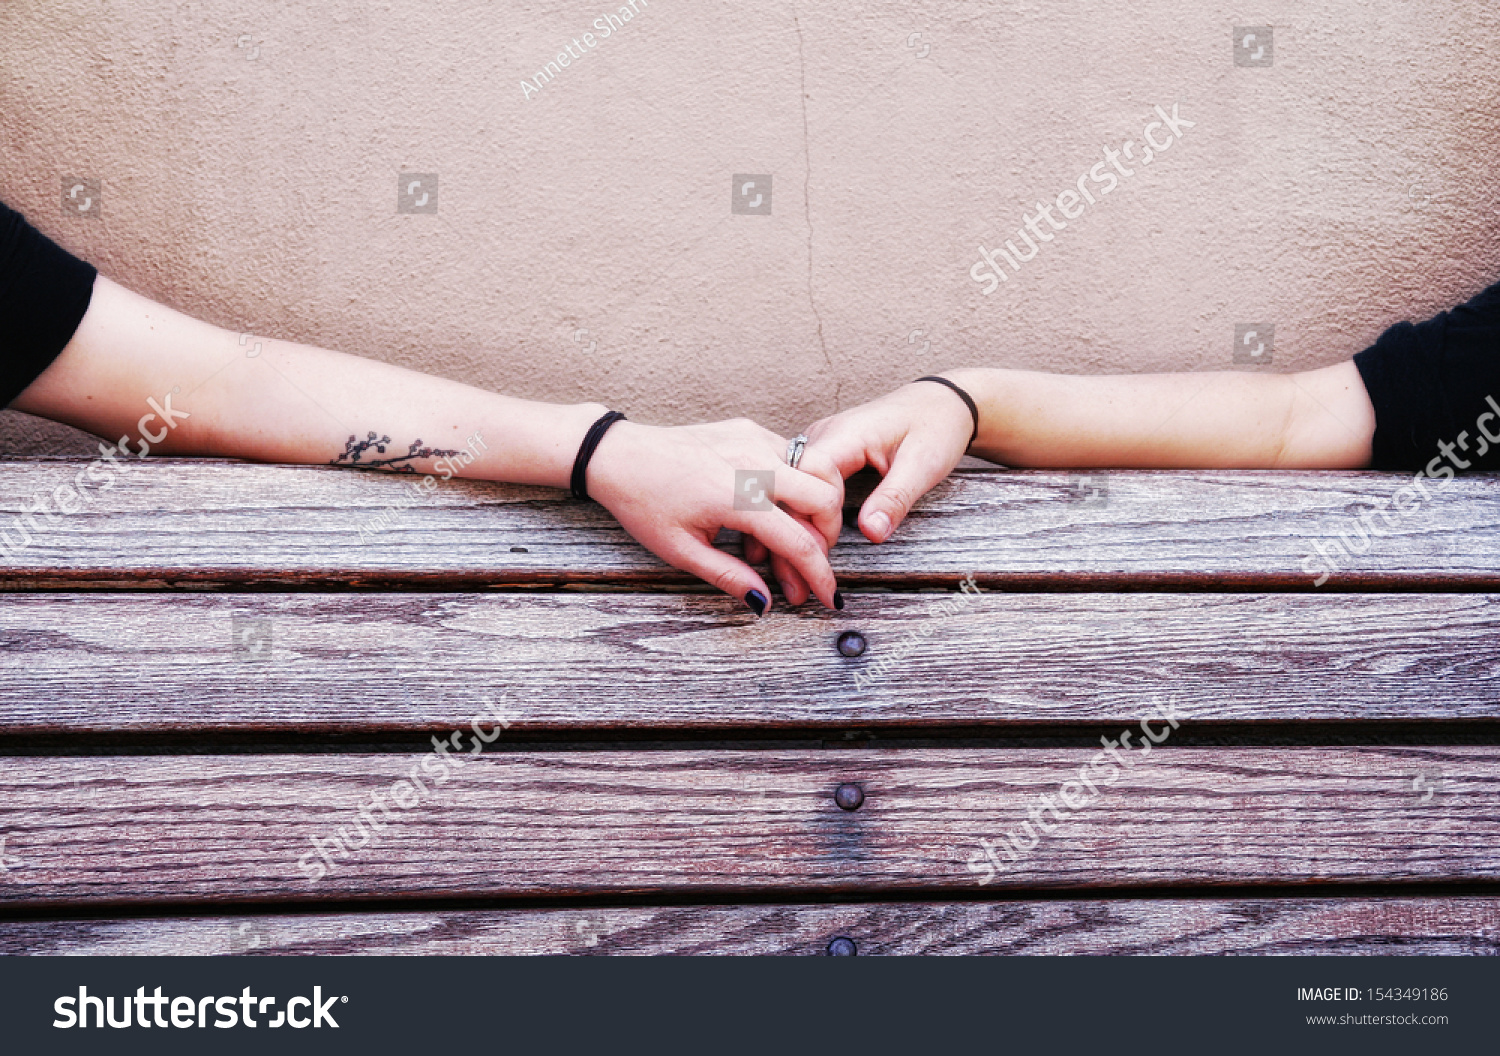 Two People Holding Hands On A Bench Stock Photo 154349186 ...